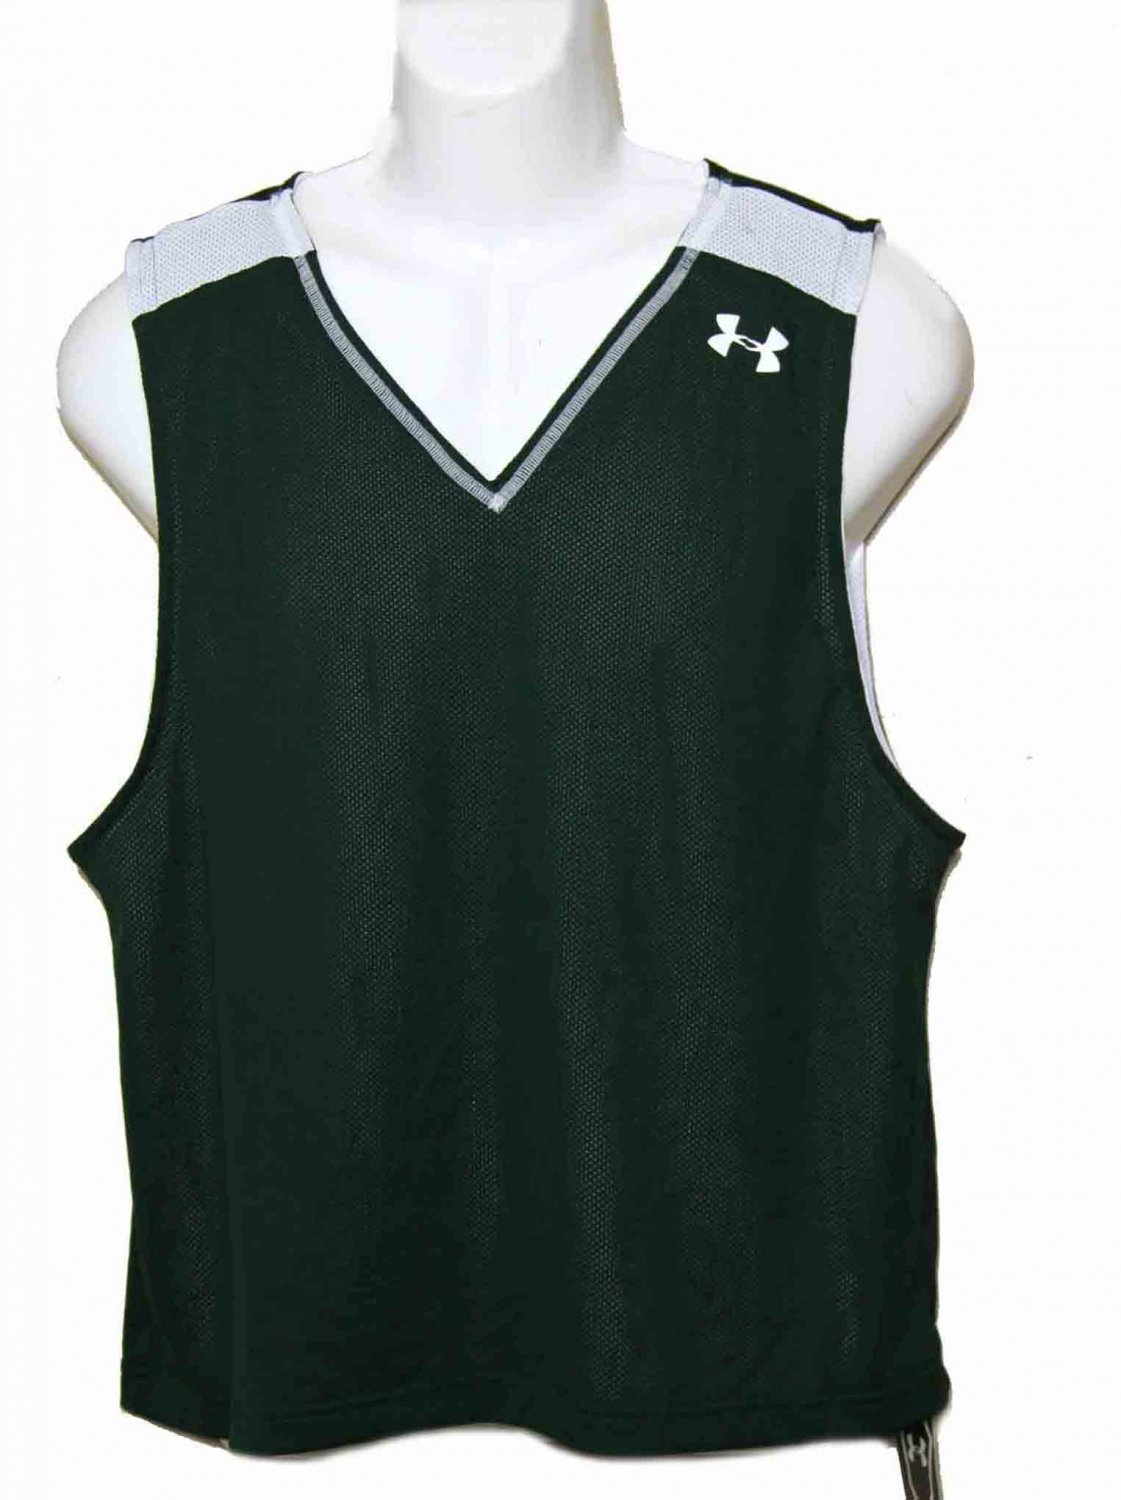 Mens Under Armour Reversible Tank Top Green White Loose Size Large